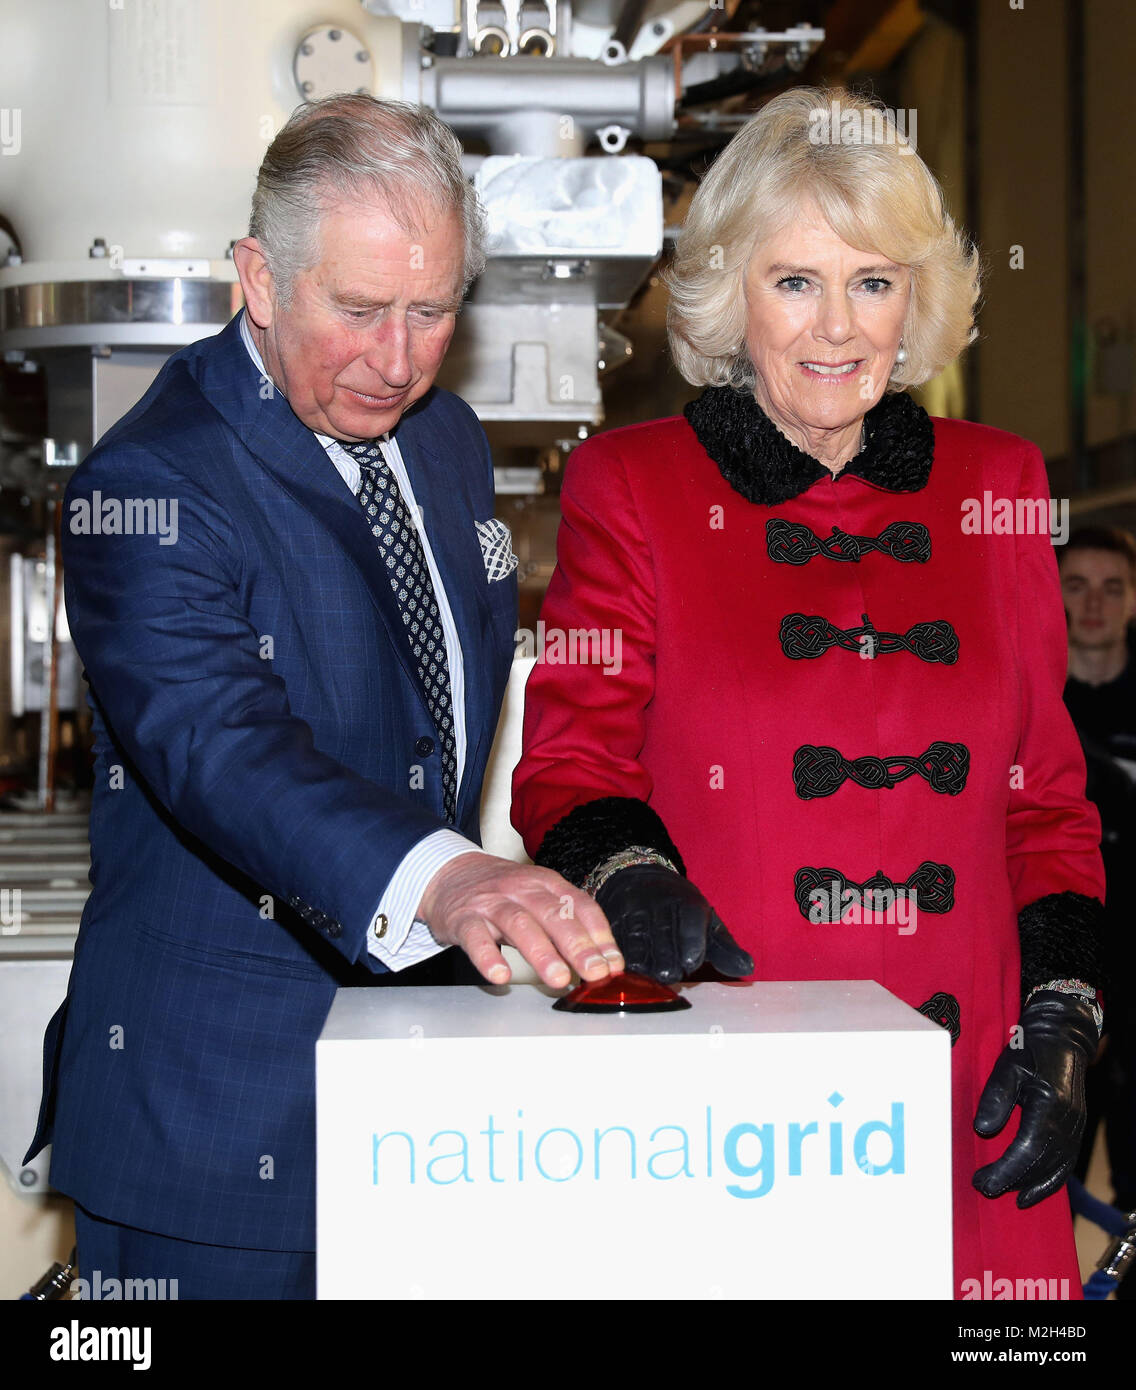 The Prince of Wales and the Duchess of Cornwall officially open The National Grid's London Power Tunnels project, - Stock Image